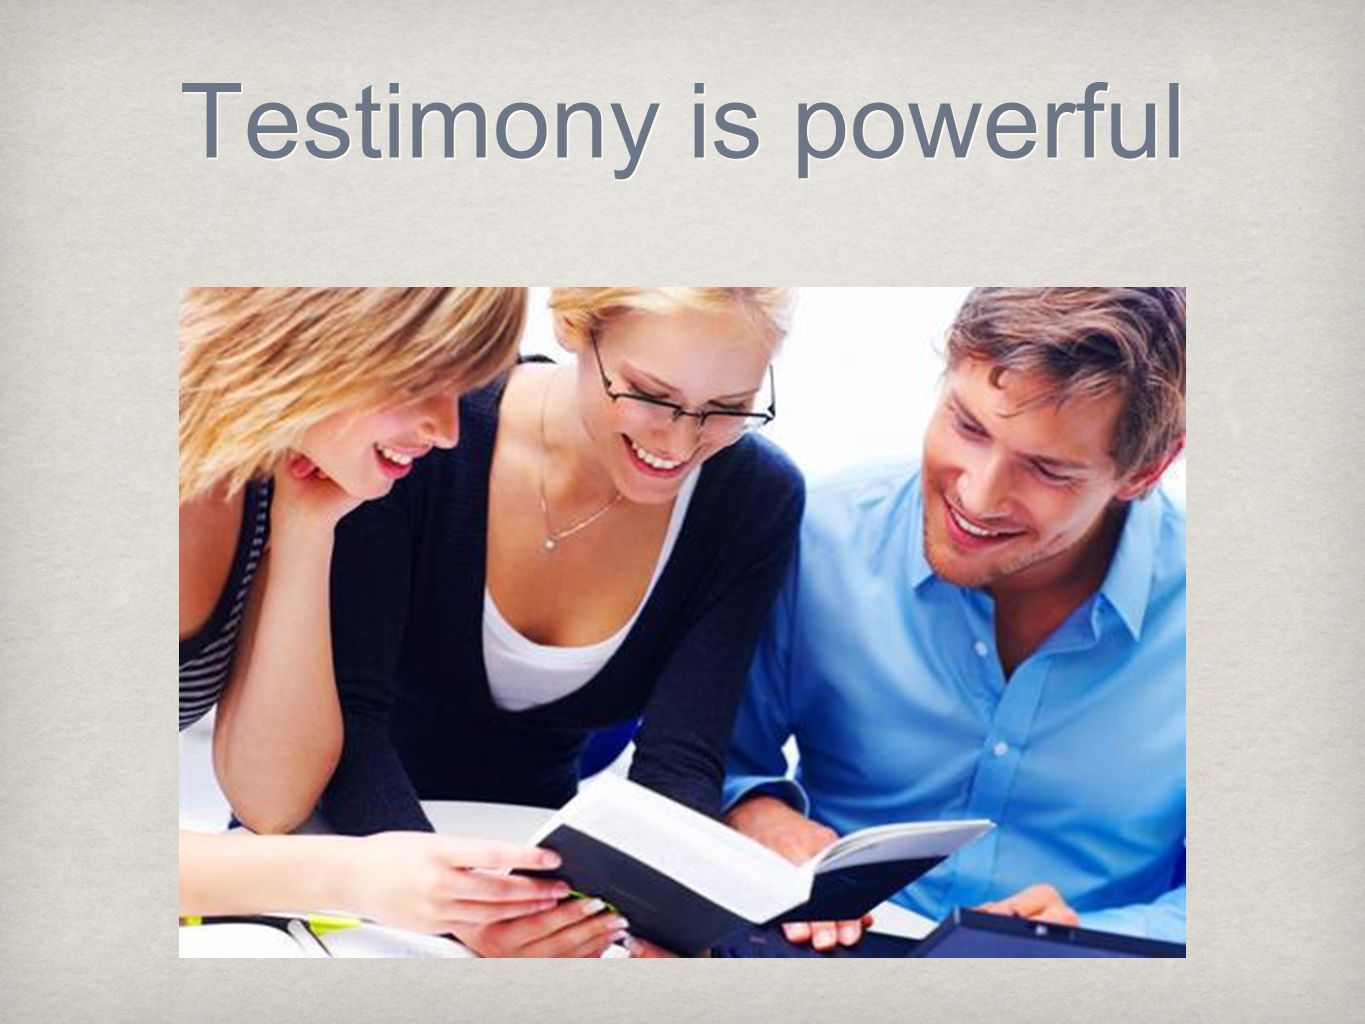 Testimony is powerful